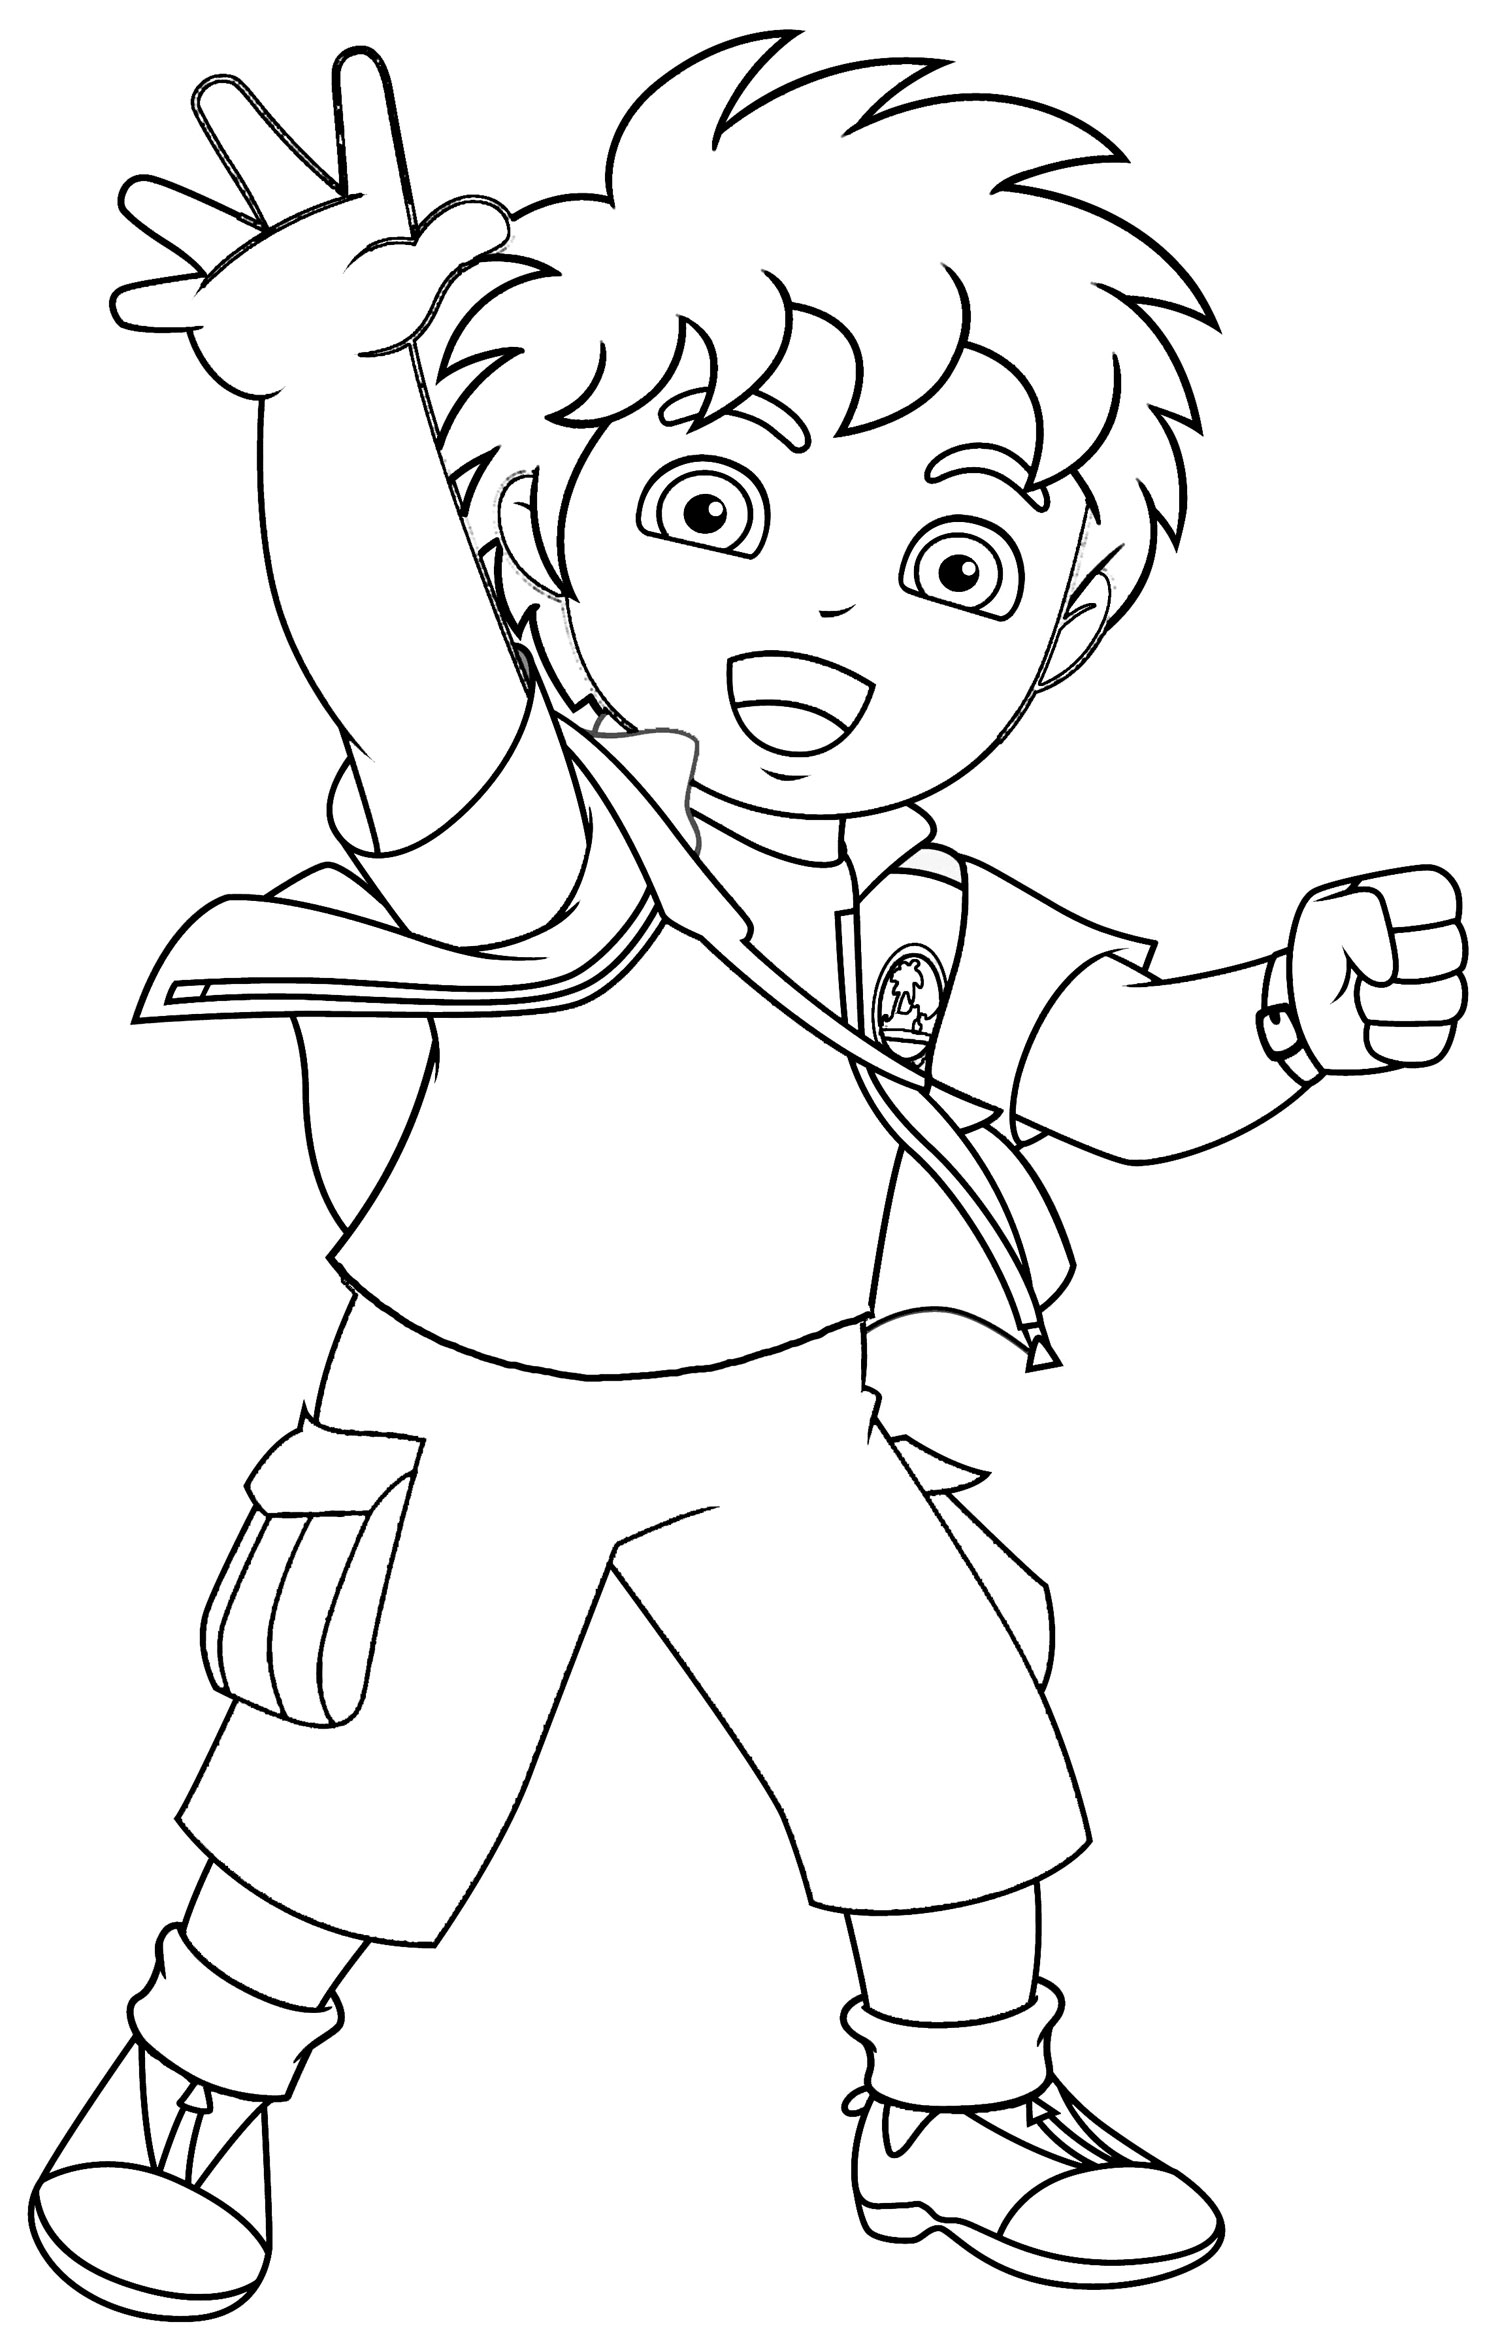 Free Printable Diego Coloring Pages For Kids Coloring Sheet Of A Printable